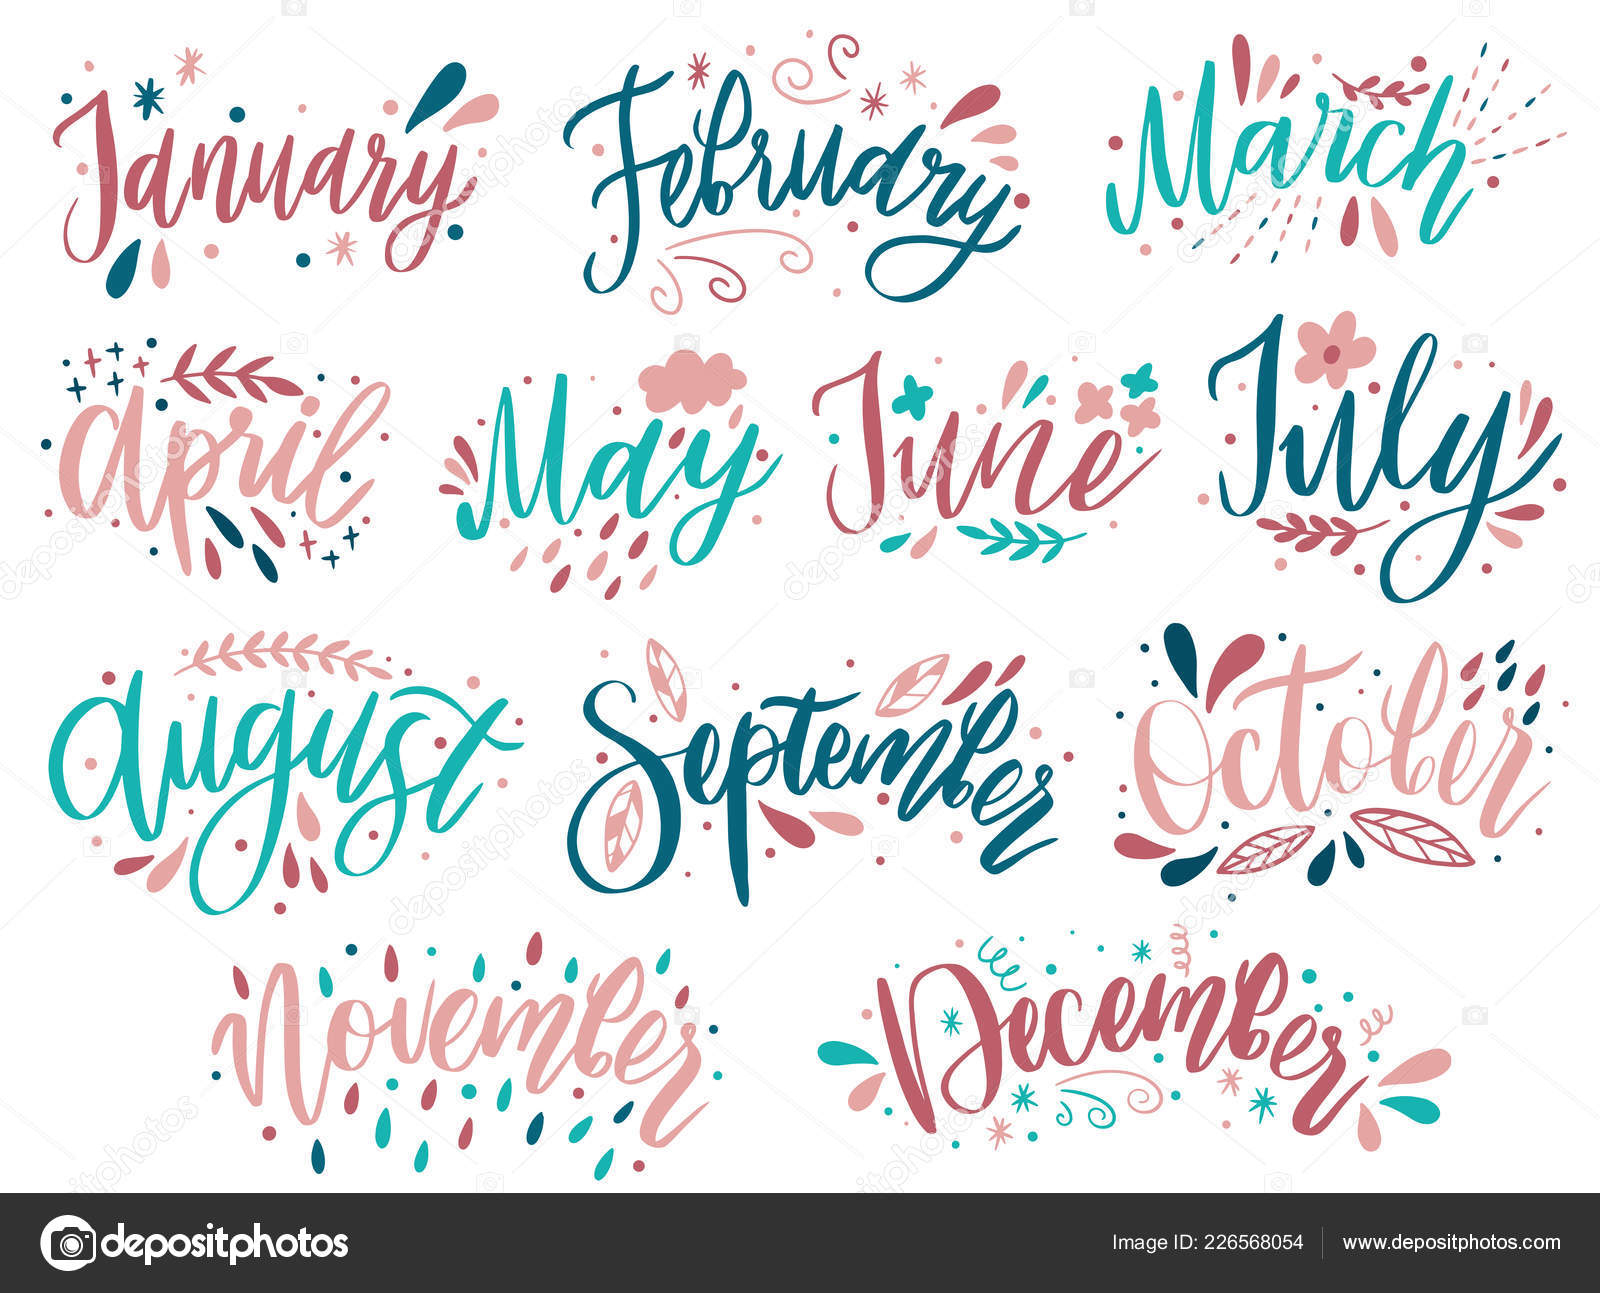 Handwritten Names Of Months: December, January, February, March, April,  May, June, July, August September October November Calligraphy Words For With Regard To October Month Mexican Calendar With Personal Names